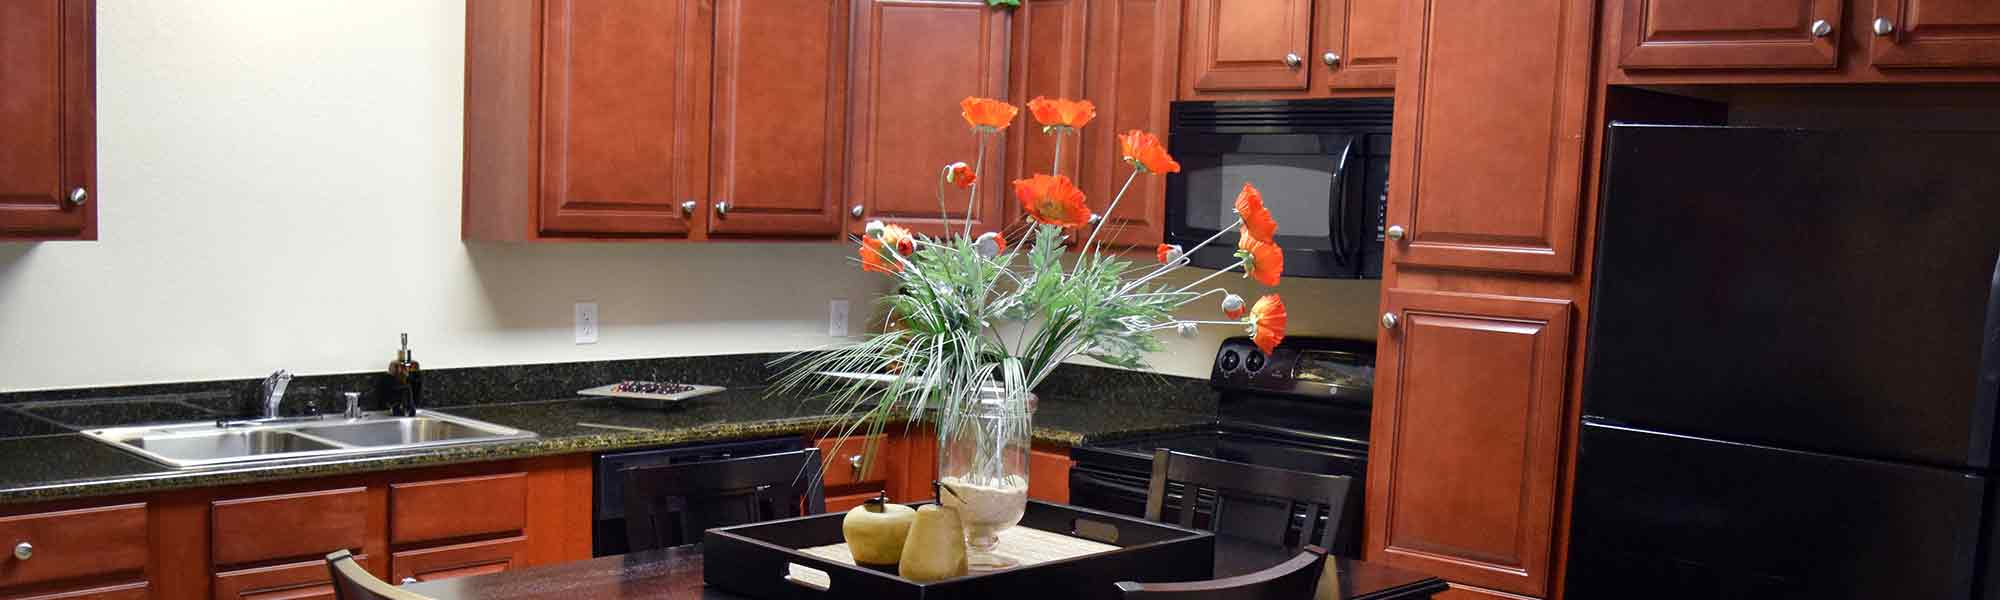 View our floor plans at Wolf Ranch Condominium Rentals on our website